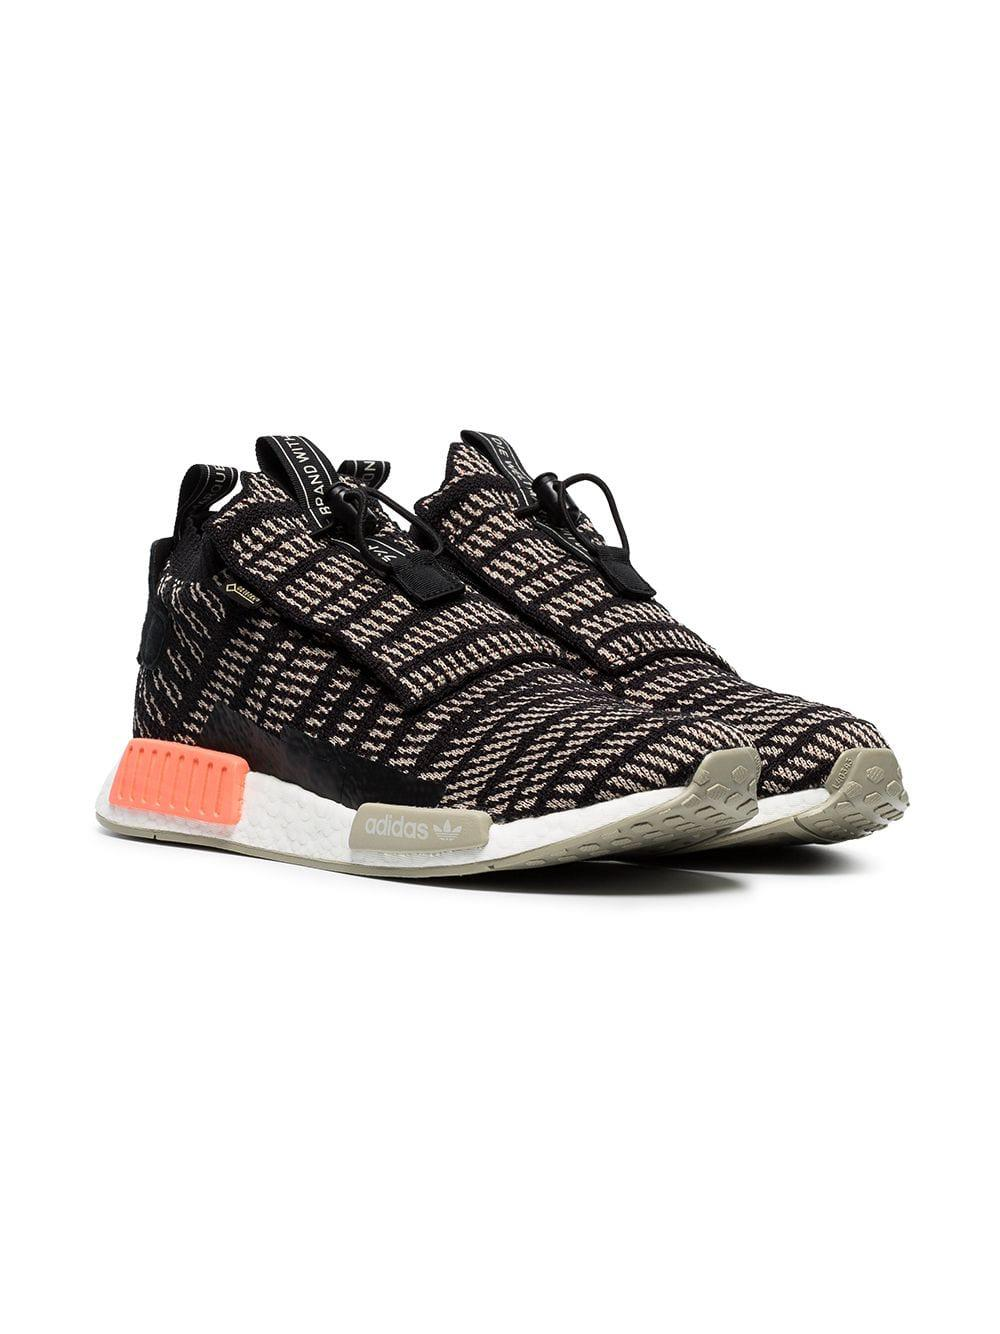 brand new 3ad61 956e8 Adidas - Black And Beige Nmd Ts1 Primeknit Gtx Sneakers for Men - Lyst.  View fullscreen